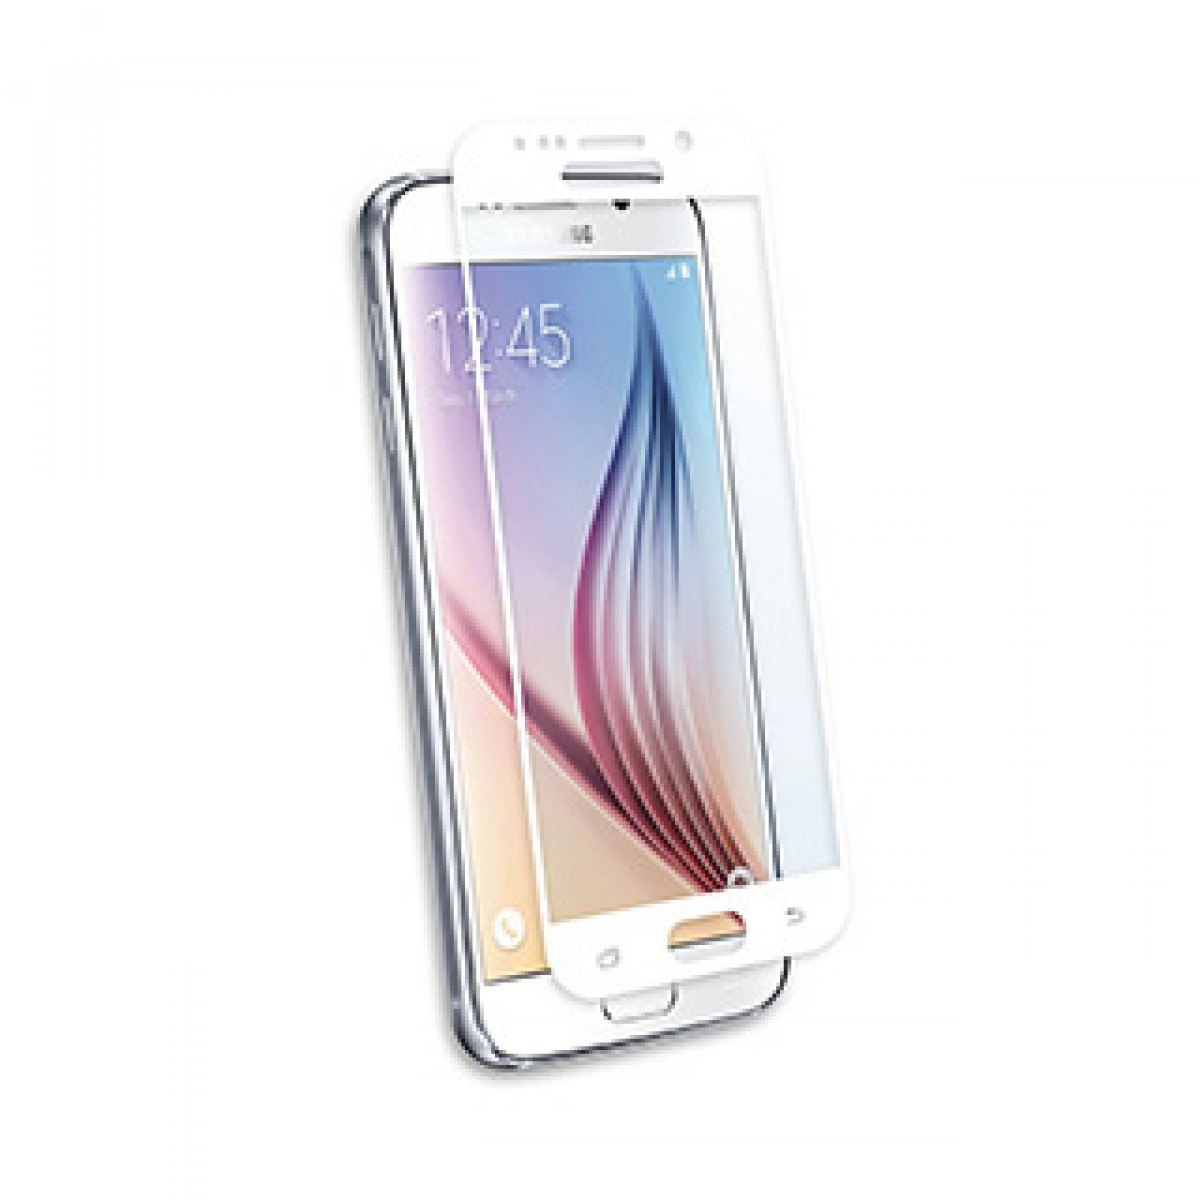 Screen Protectors Intouch Wireless Shining Case Crystal Clear For Samsung Galaxy S6 Qmadix White Tech Armor Edge To Tempered Glass Protector